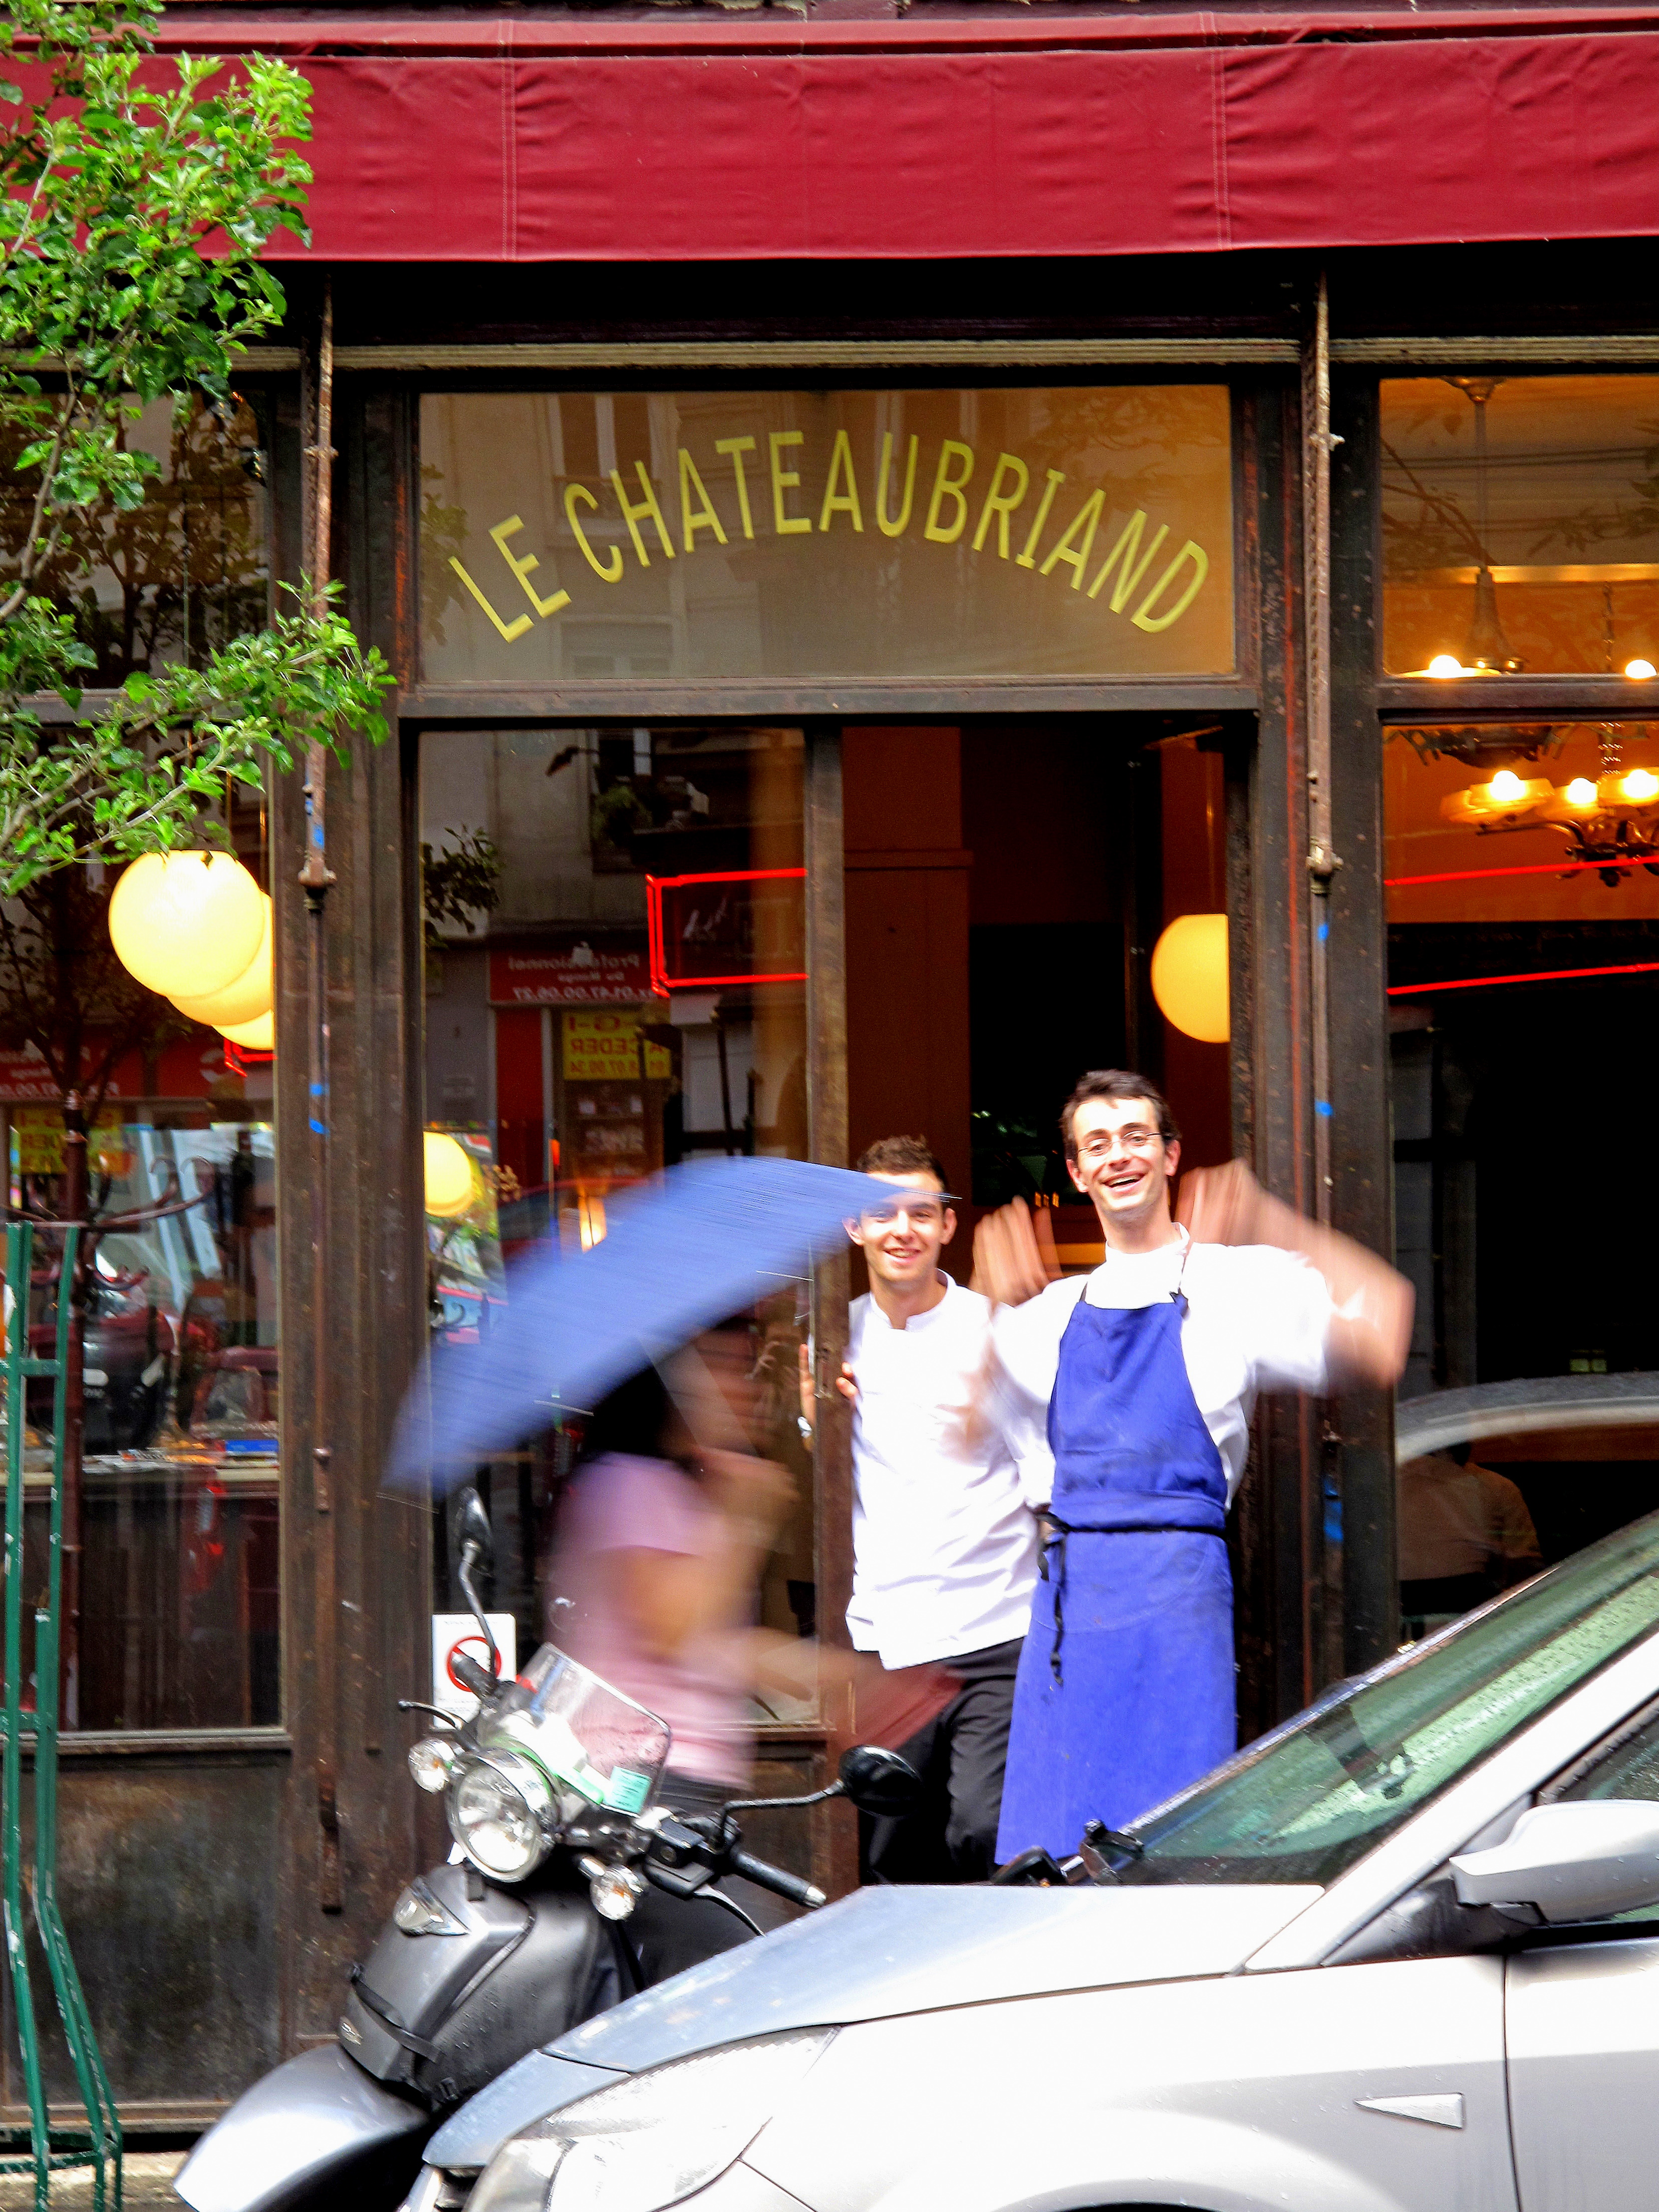 Le chateaubriand food snob for Le miroir resto paris